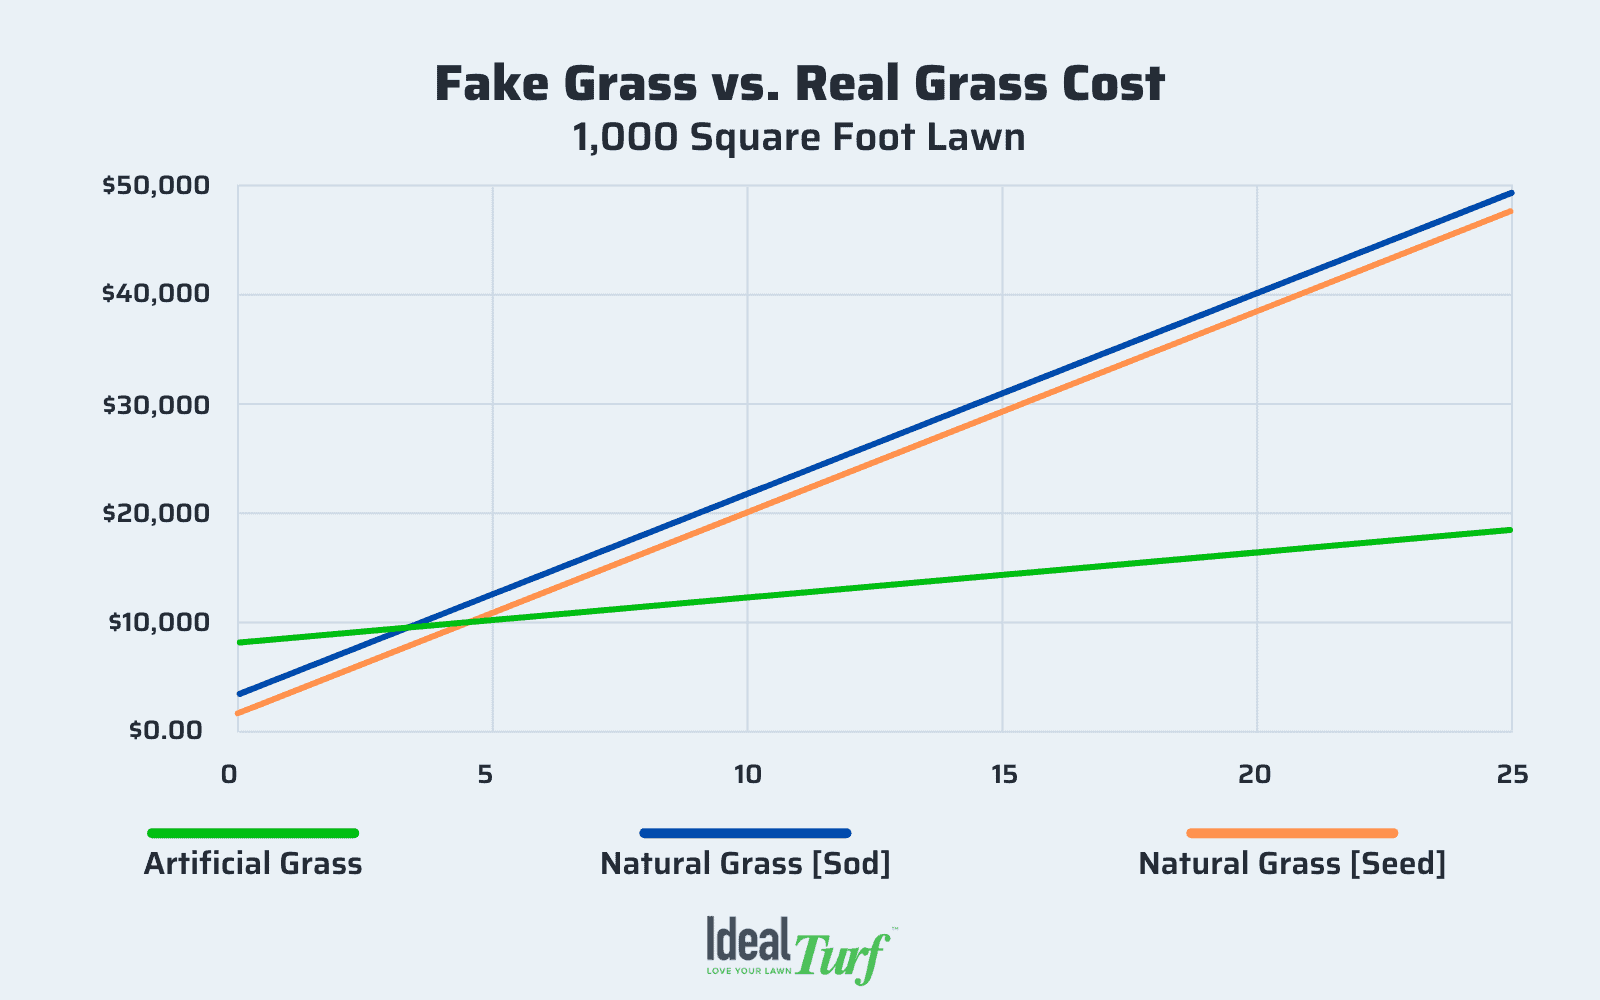 Fake grass vs. natural grass installation and maintenance costs for 1,000 sq. ft. over 25 yeras.